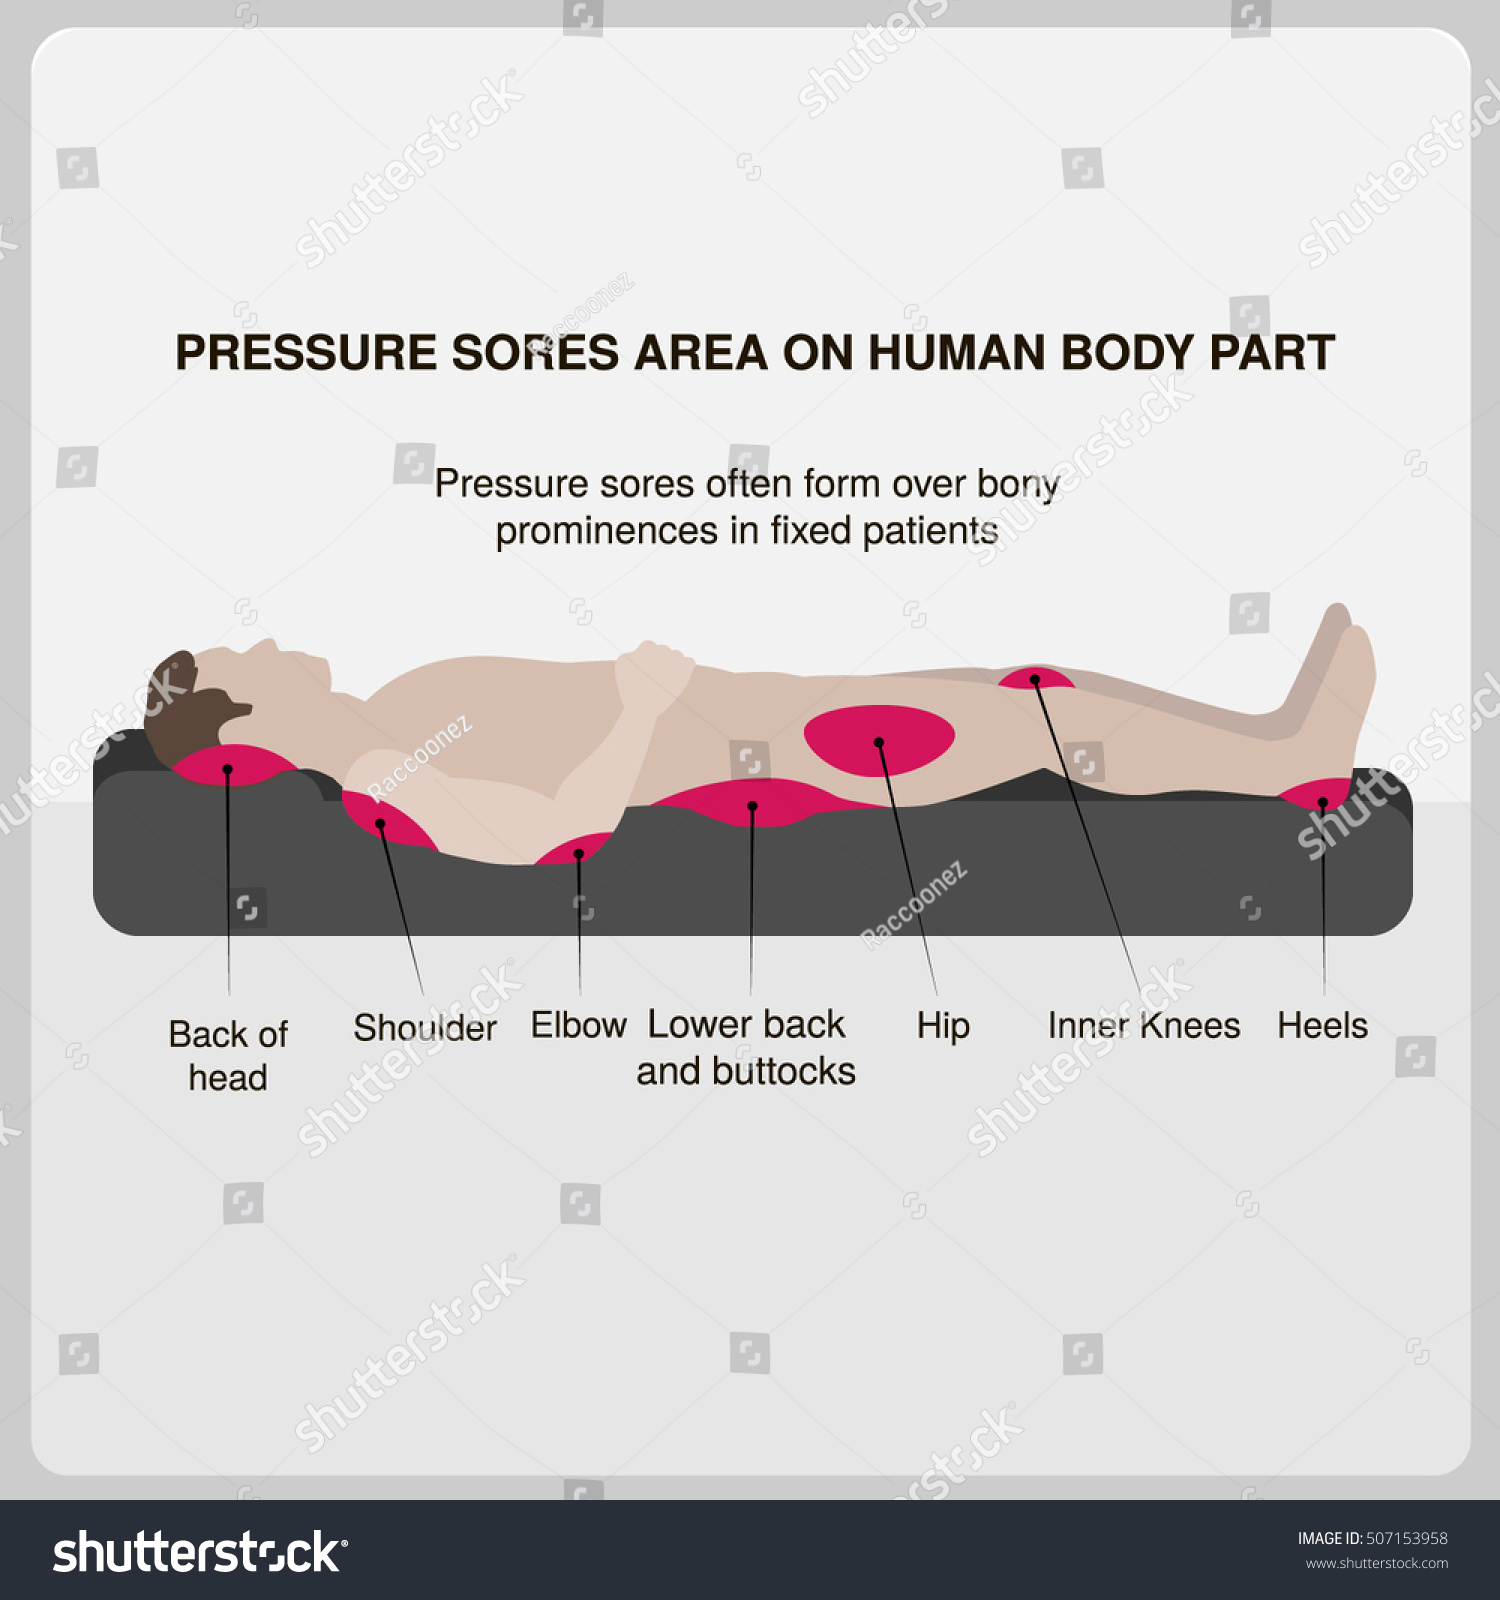 hight resolution of pressure sores area on human body part vector illustration